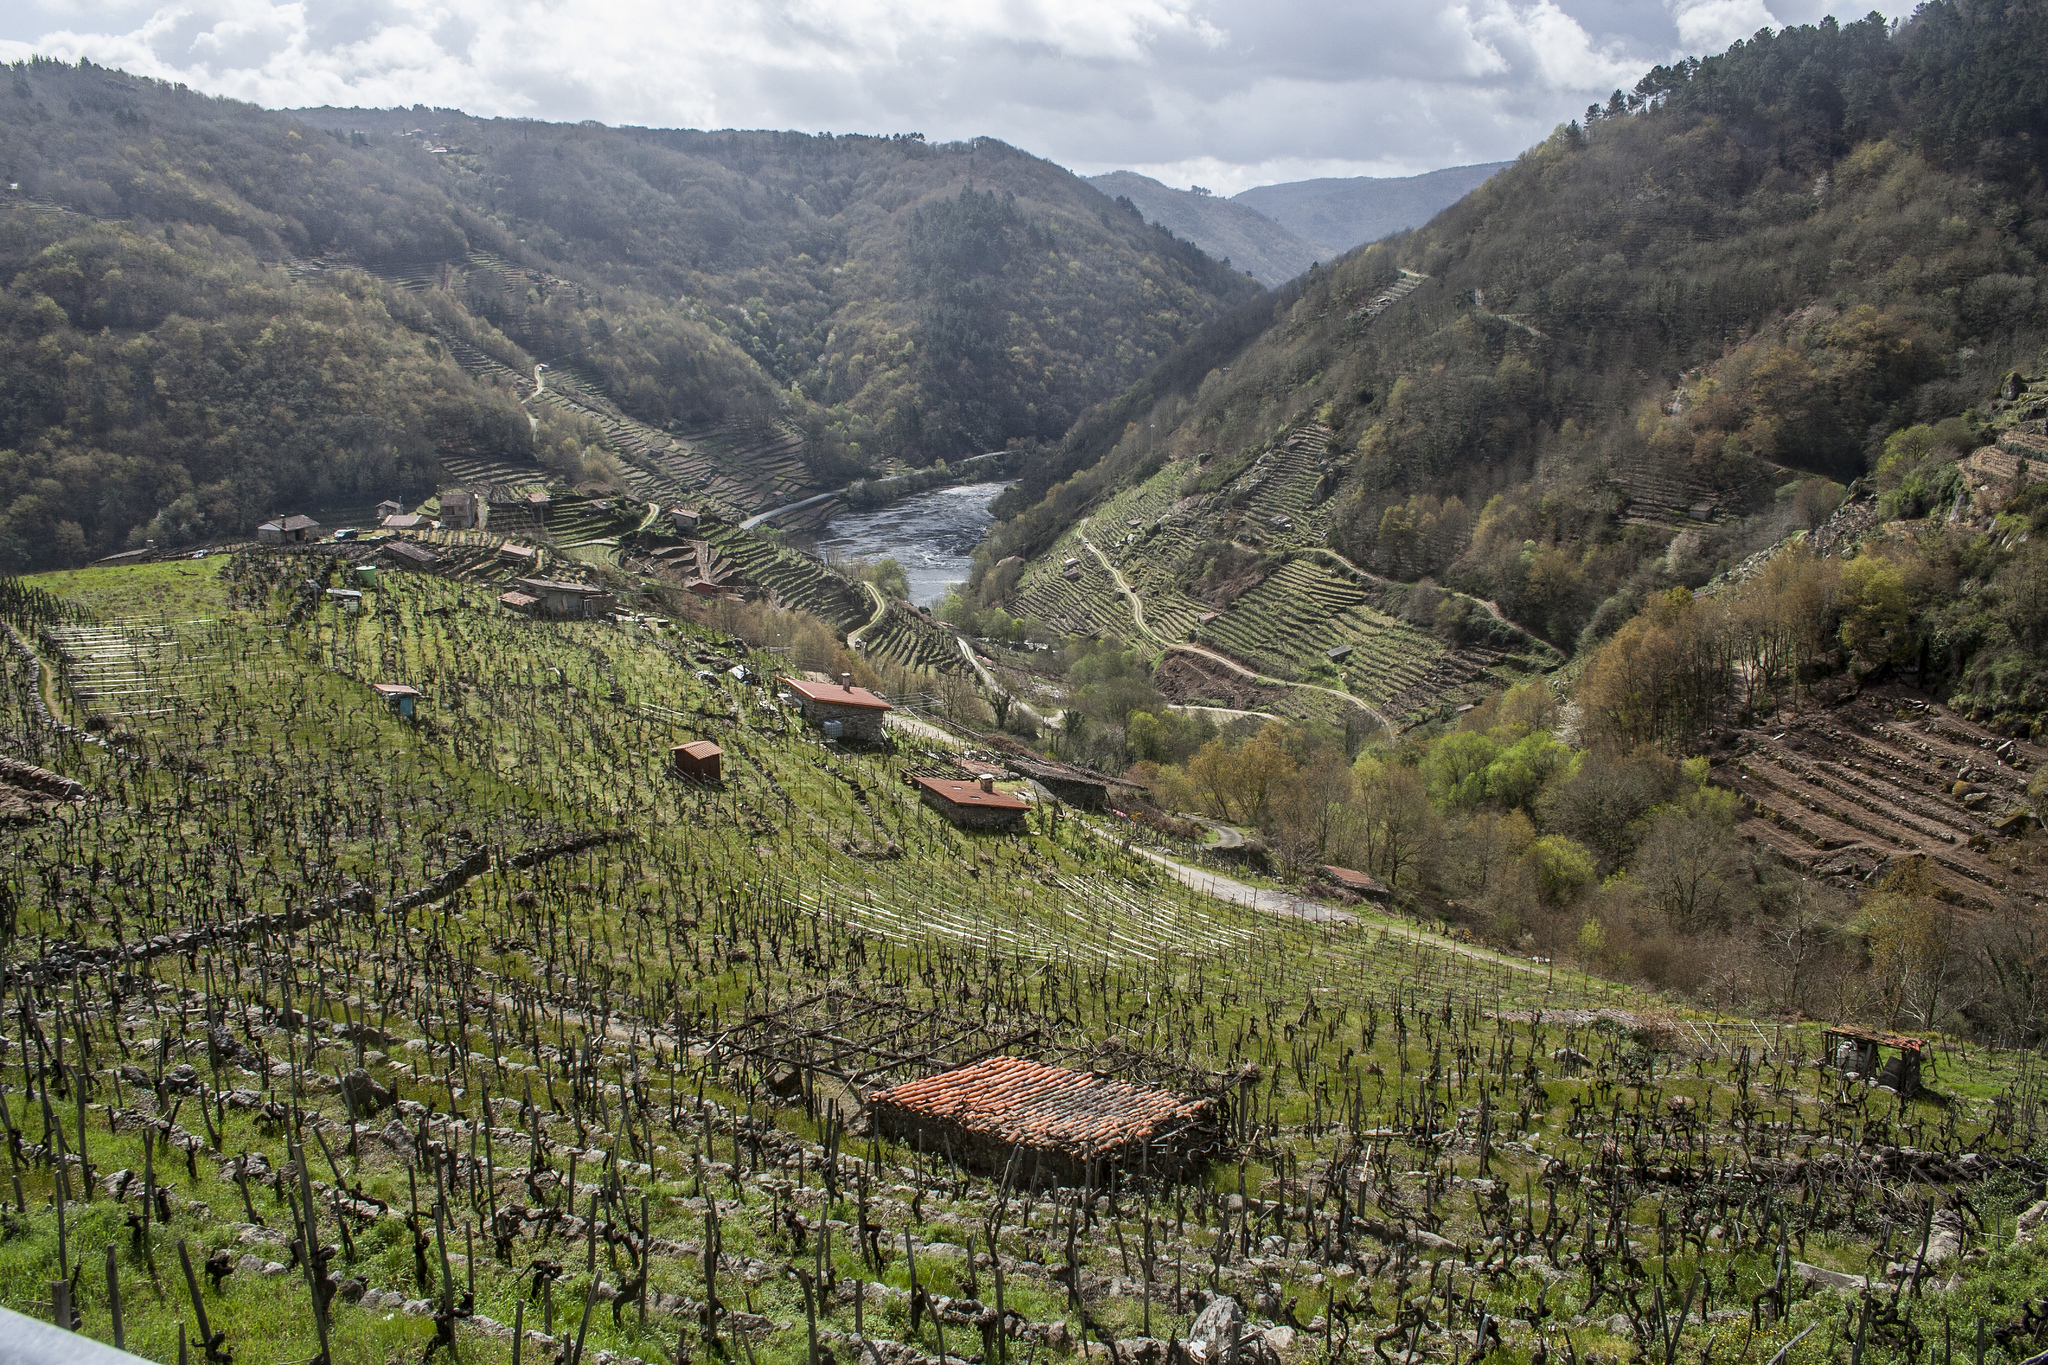 Vineyards in the canyons of the Ribeira Sacra